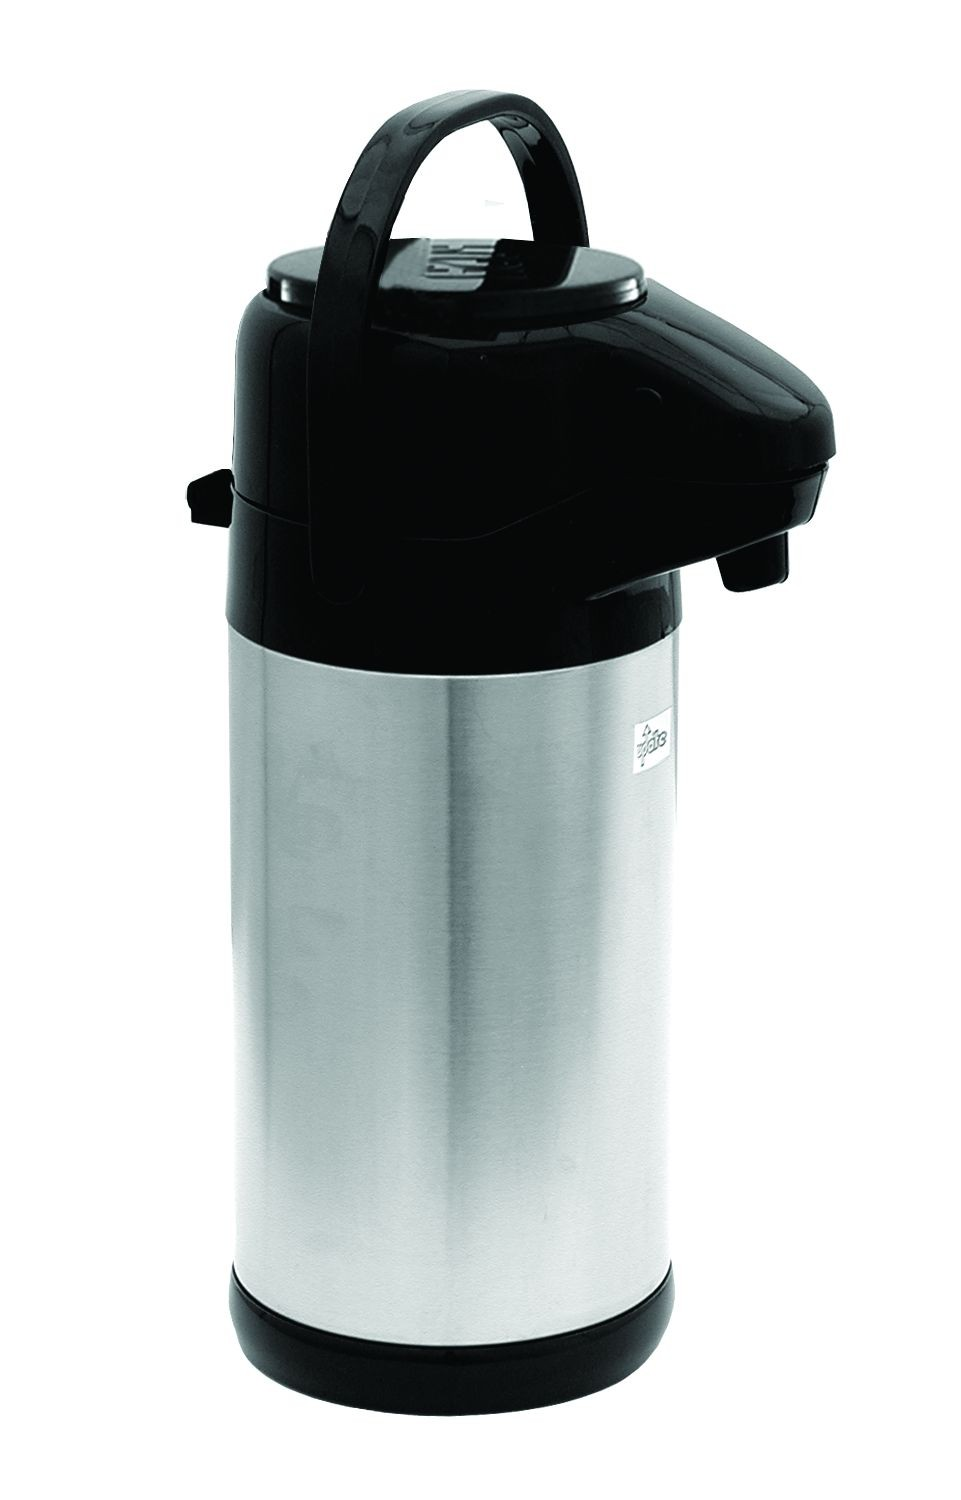 Update International NVSP-30BK Stainless Steel Liner 3 Liter Push Button Airpot